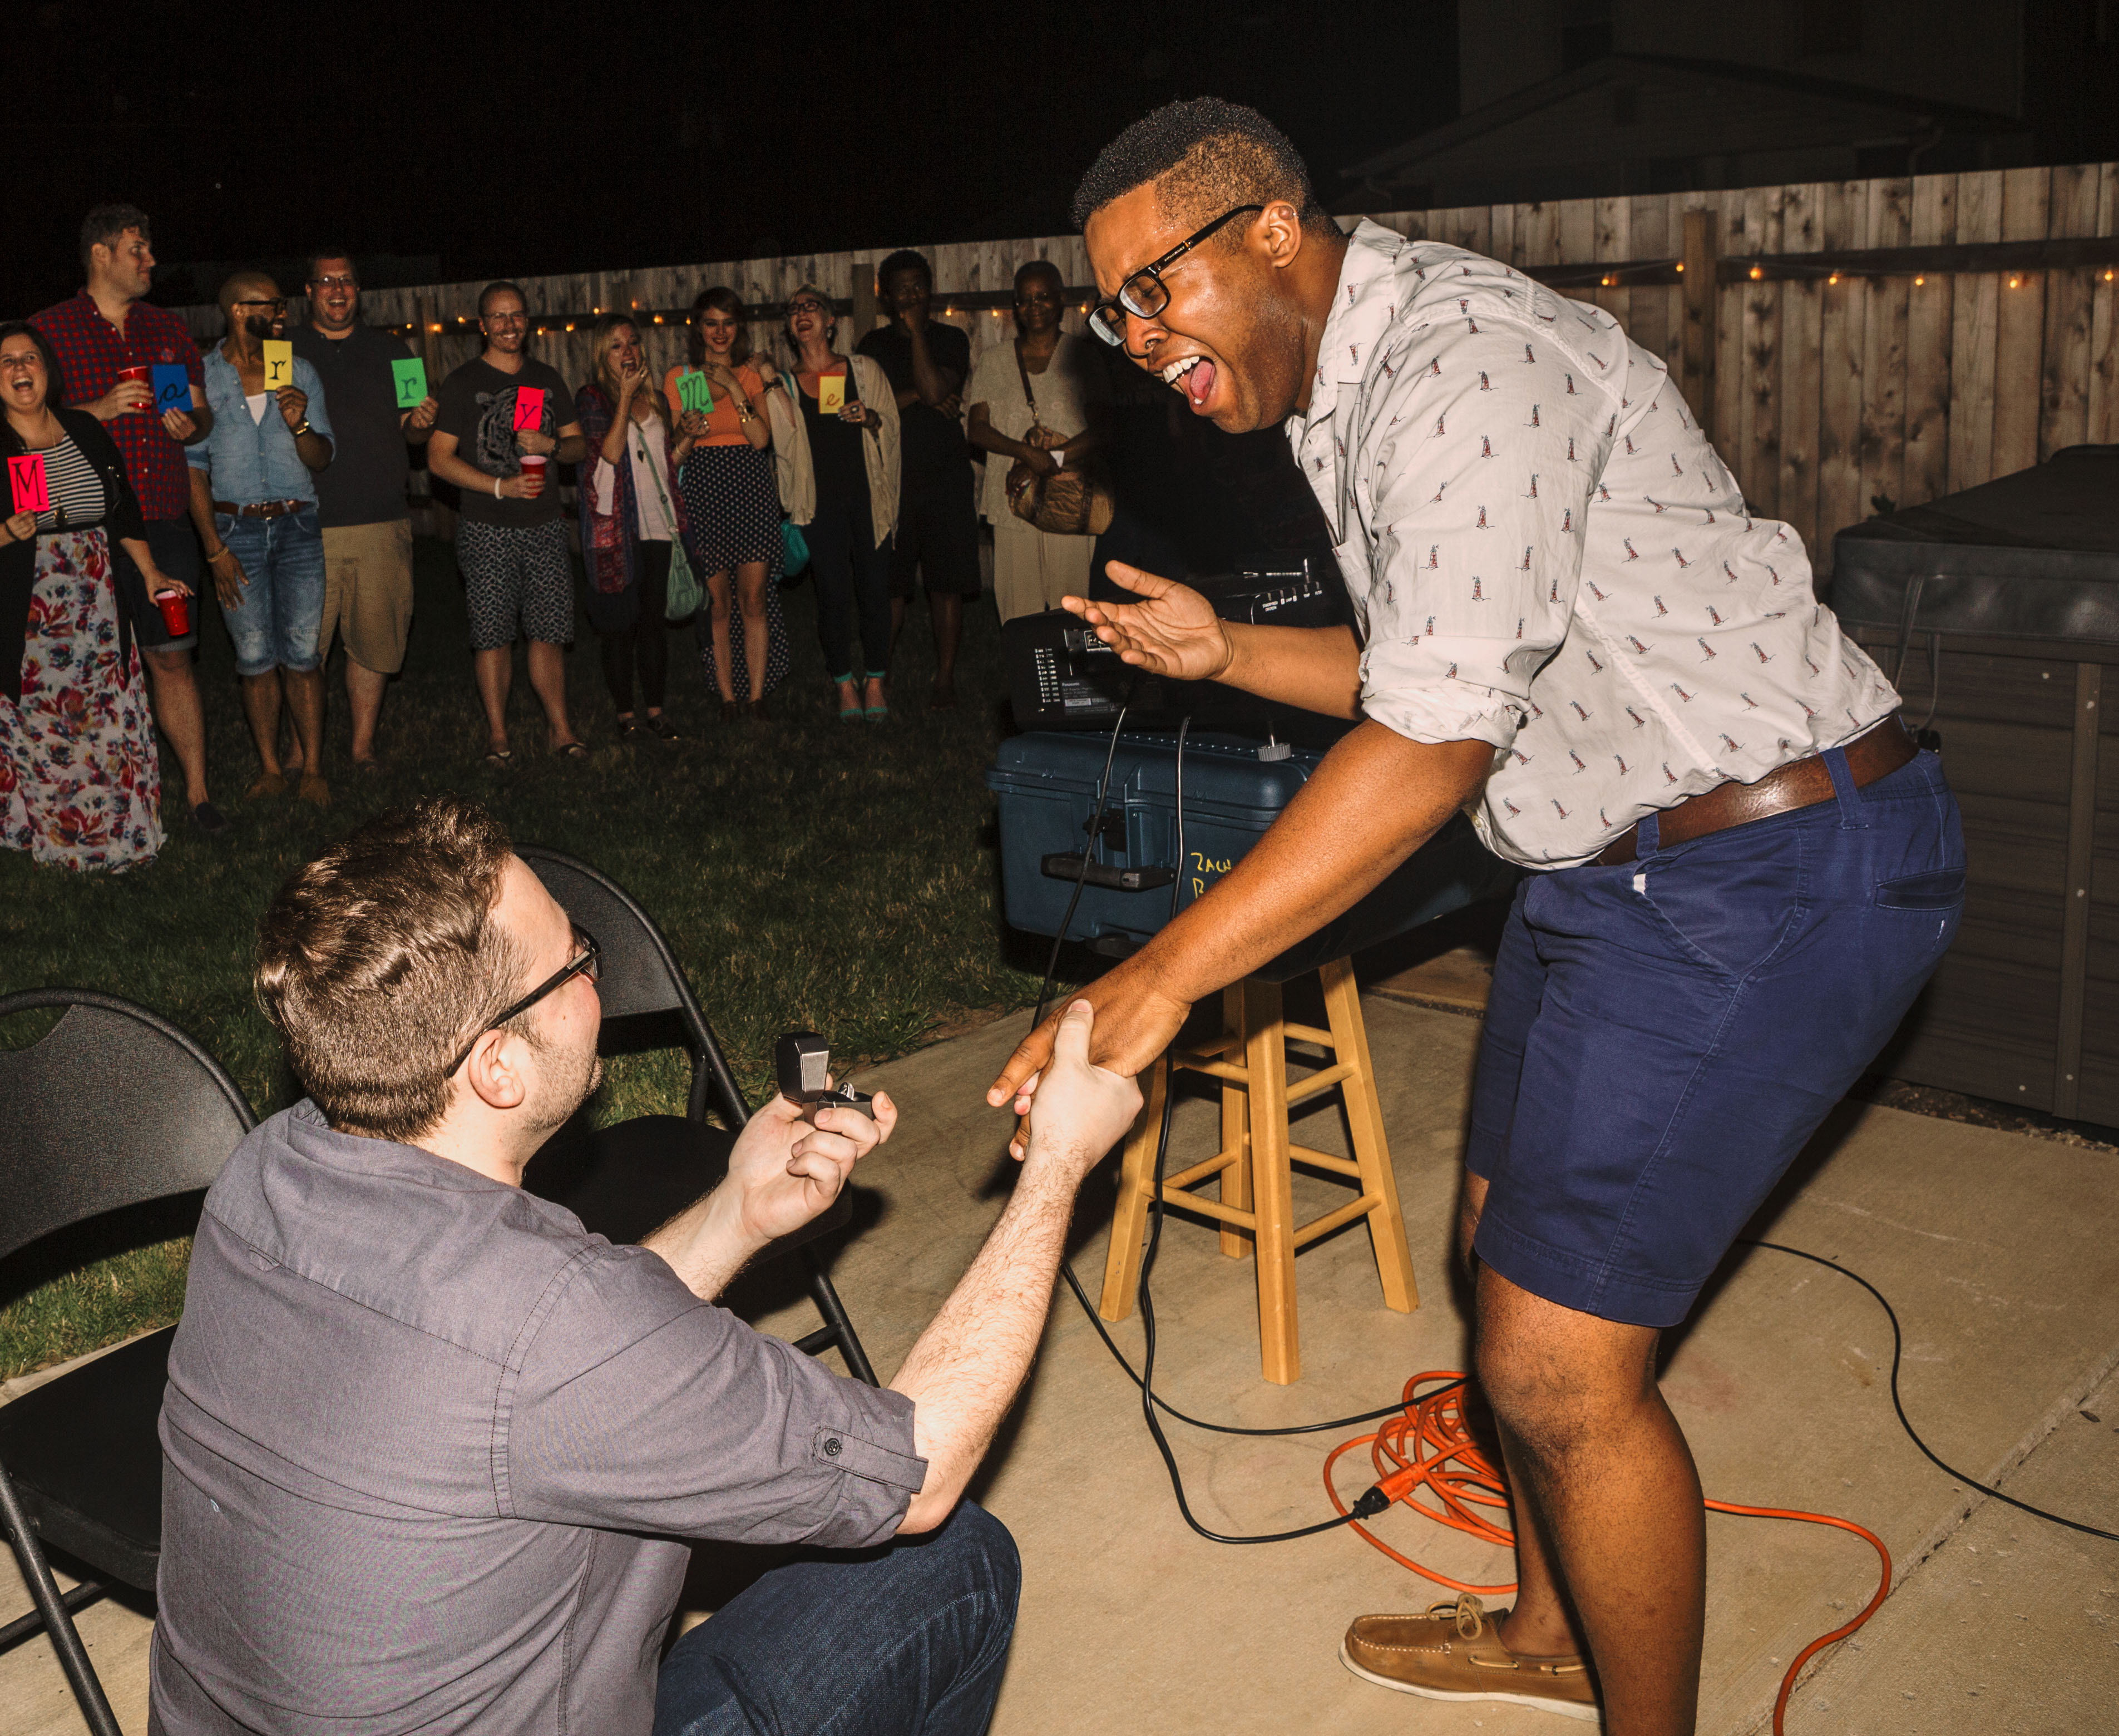 Image 6 of TJ and Matt's Surprise Gay Marriage Proposal